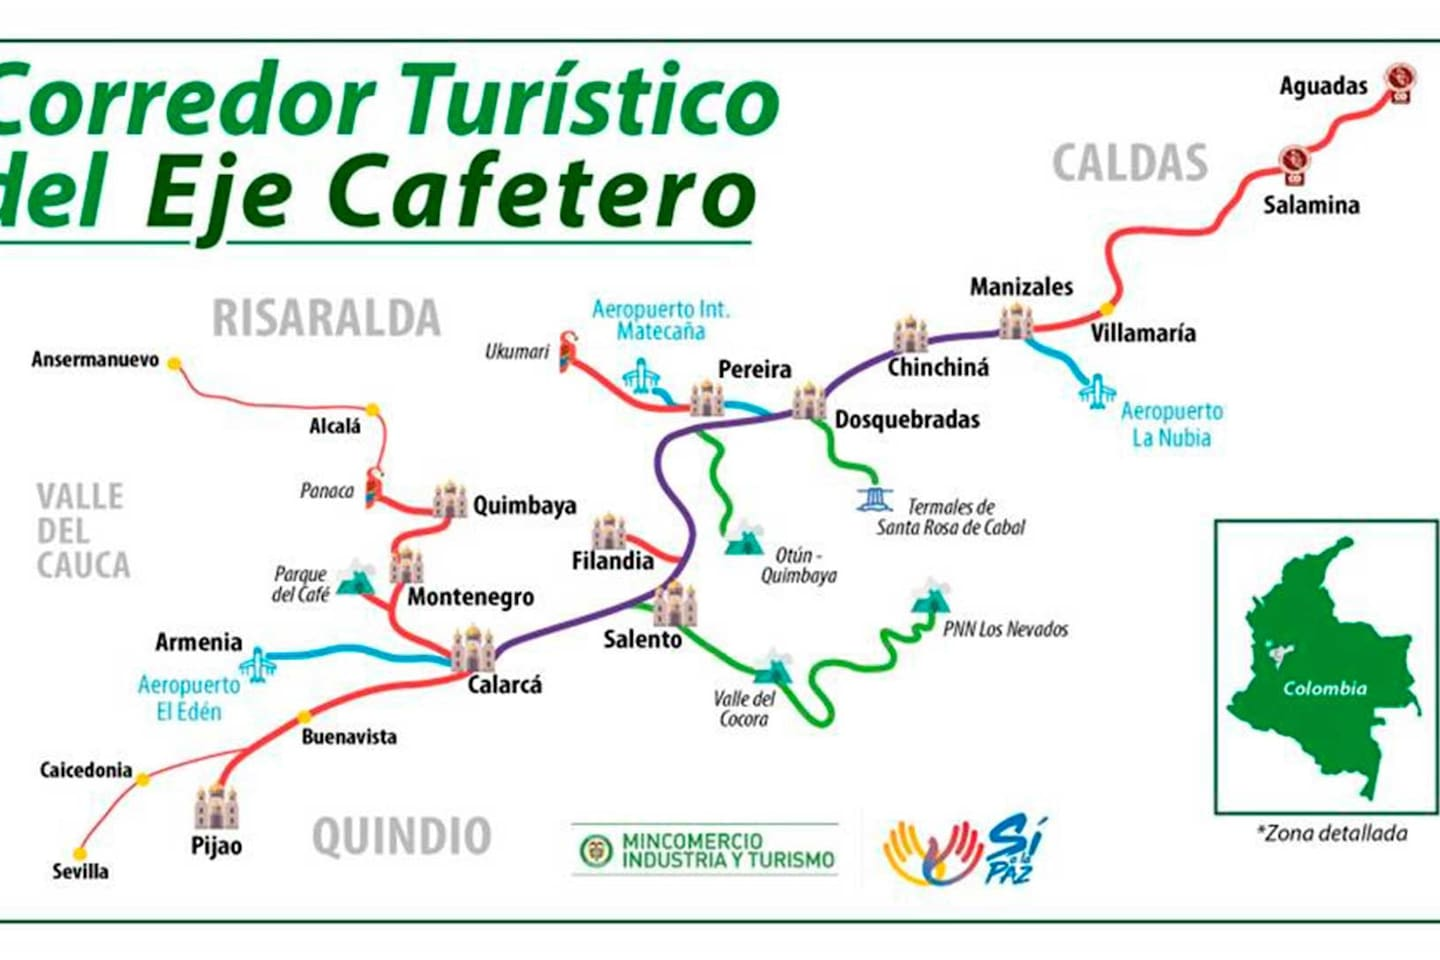 Beautiful Resting place on the EJE CAFETERO!!!